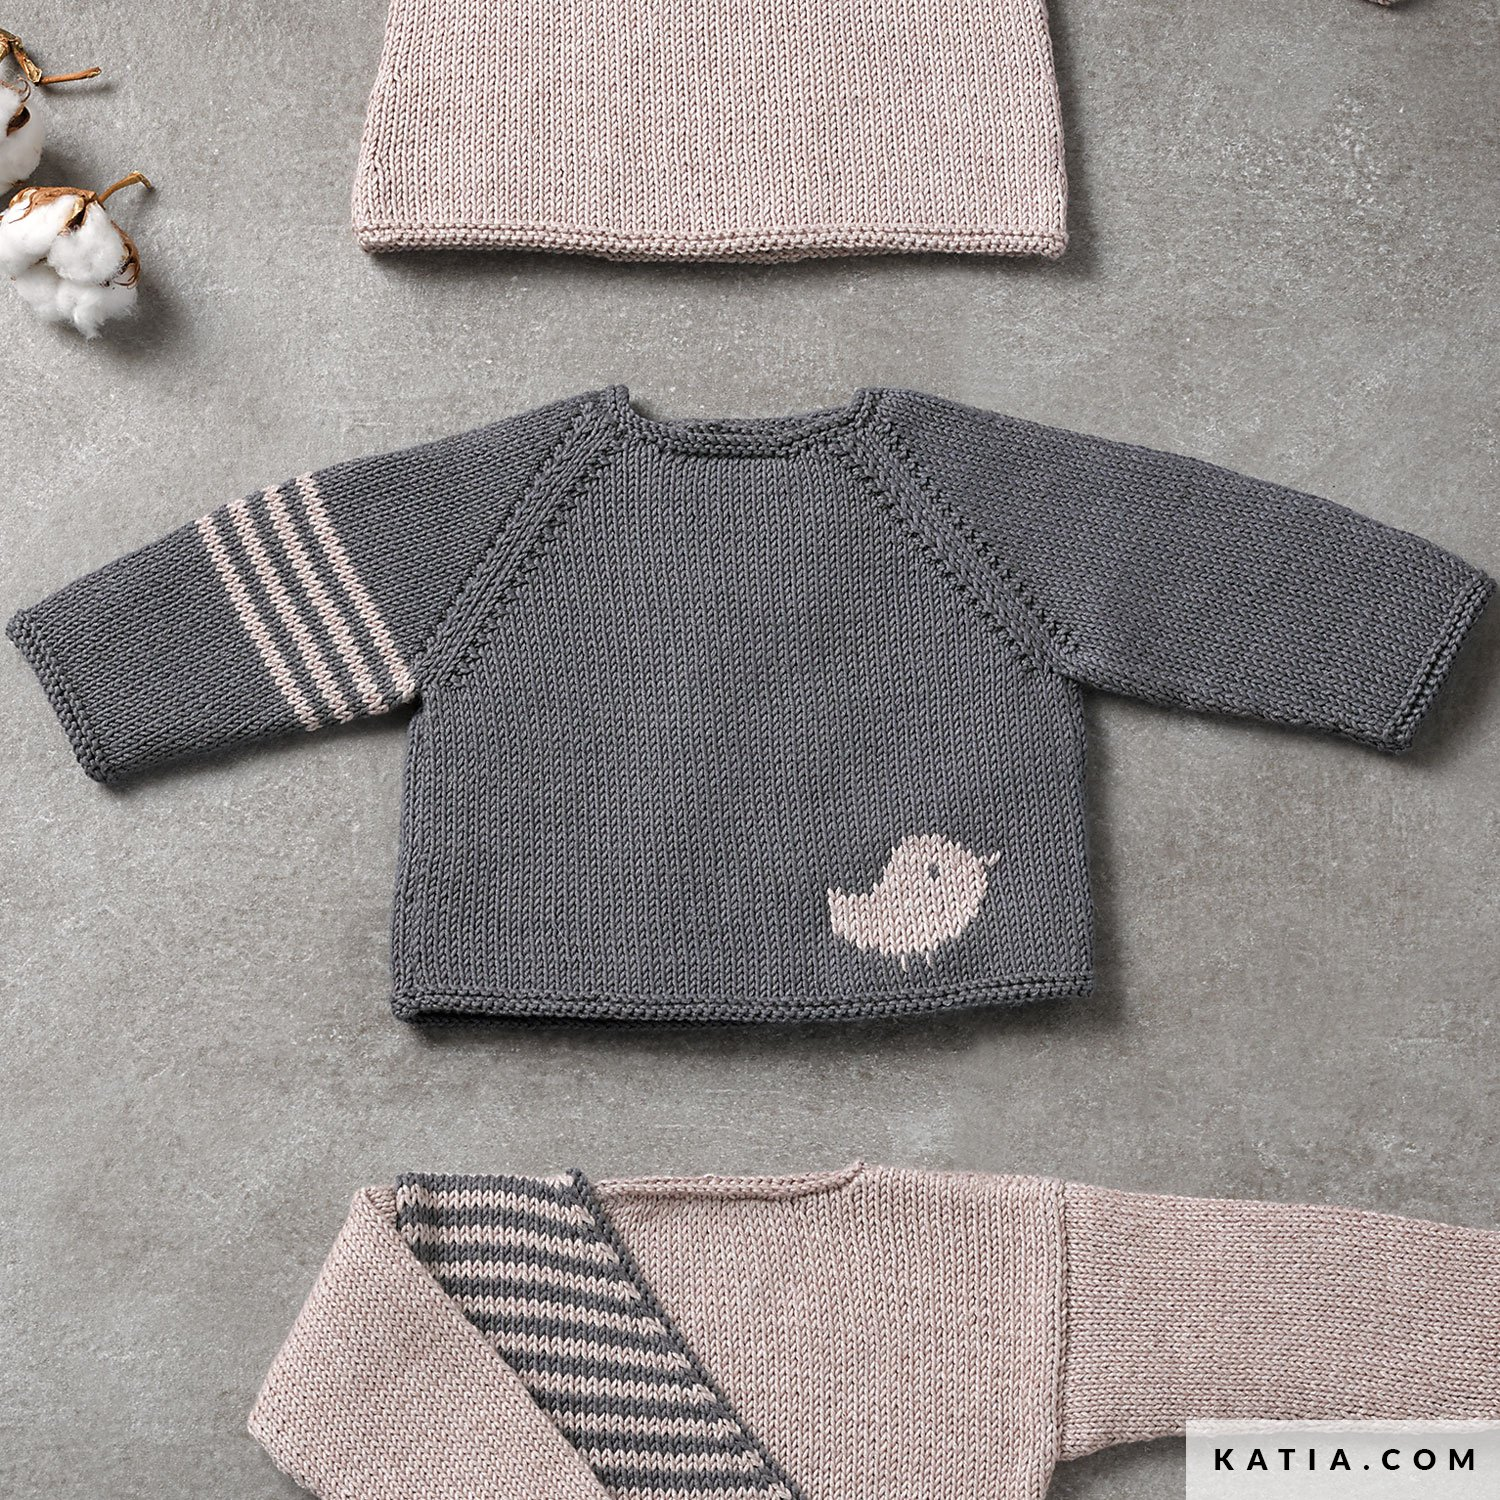 http://lapassionauboutdesdoigts.fr/wp-content/uploads/2021/05/patron-tricoter-tricot-crochet-layette-pull-automne-hiver-katia-6038-15-g.jpg